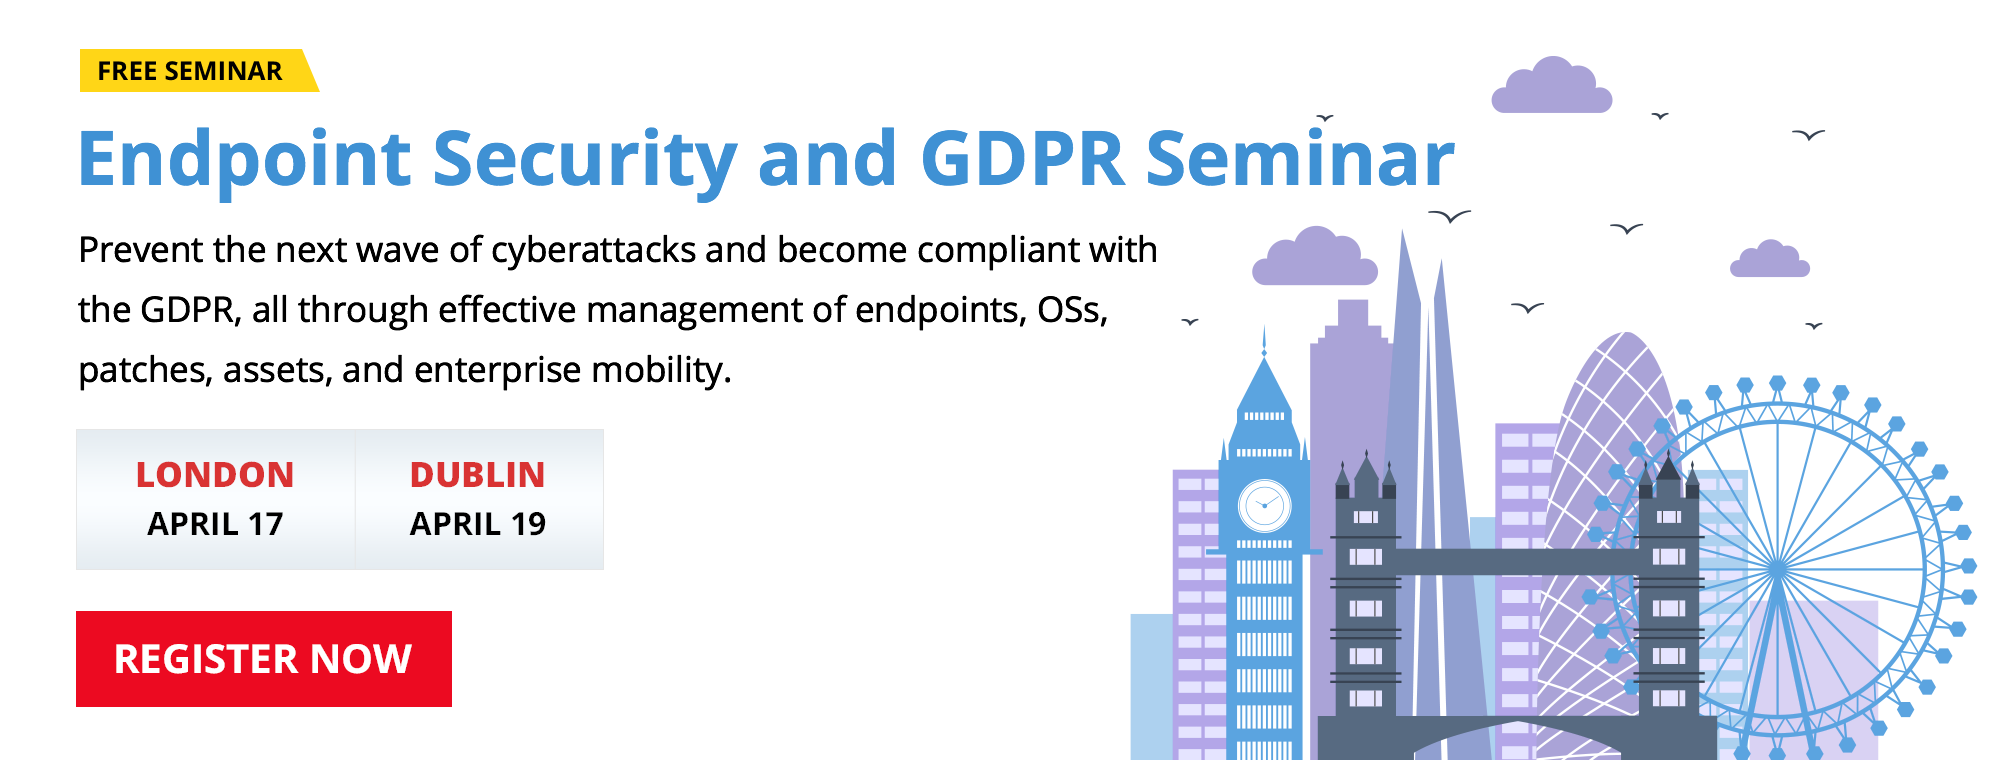 Endpoint Security and GDPR Seminar